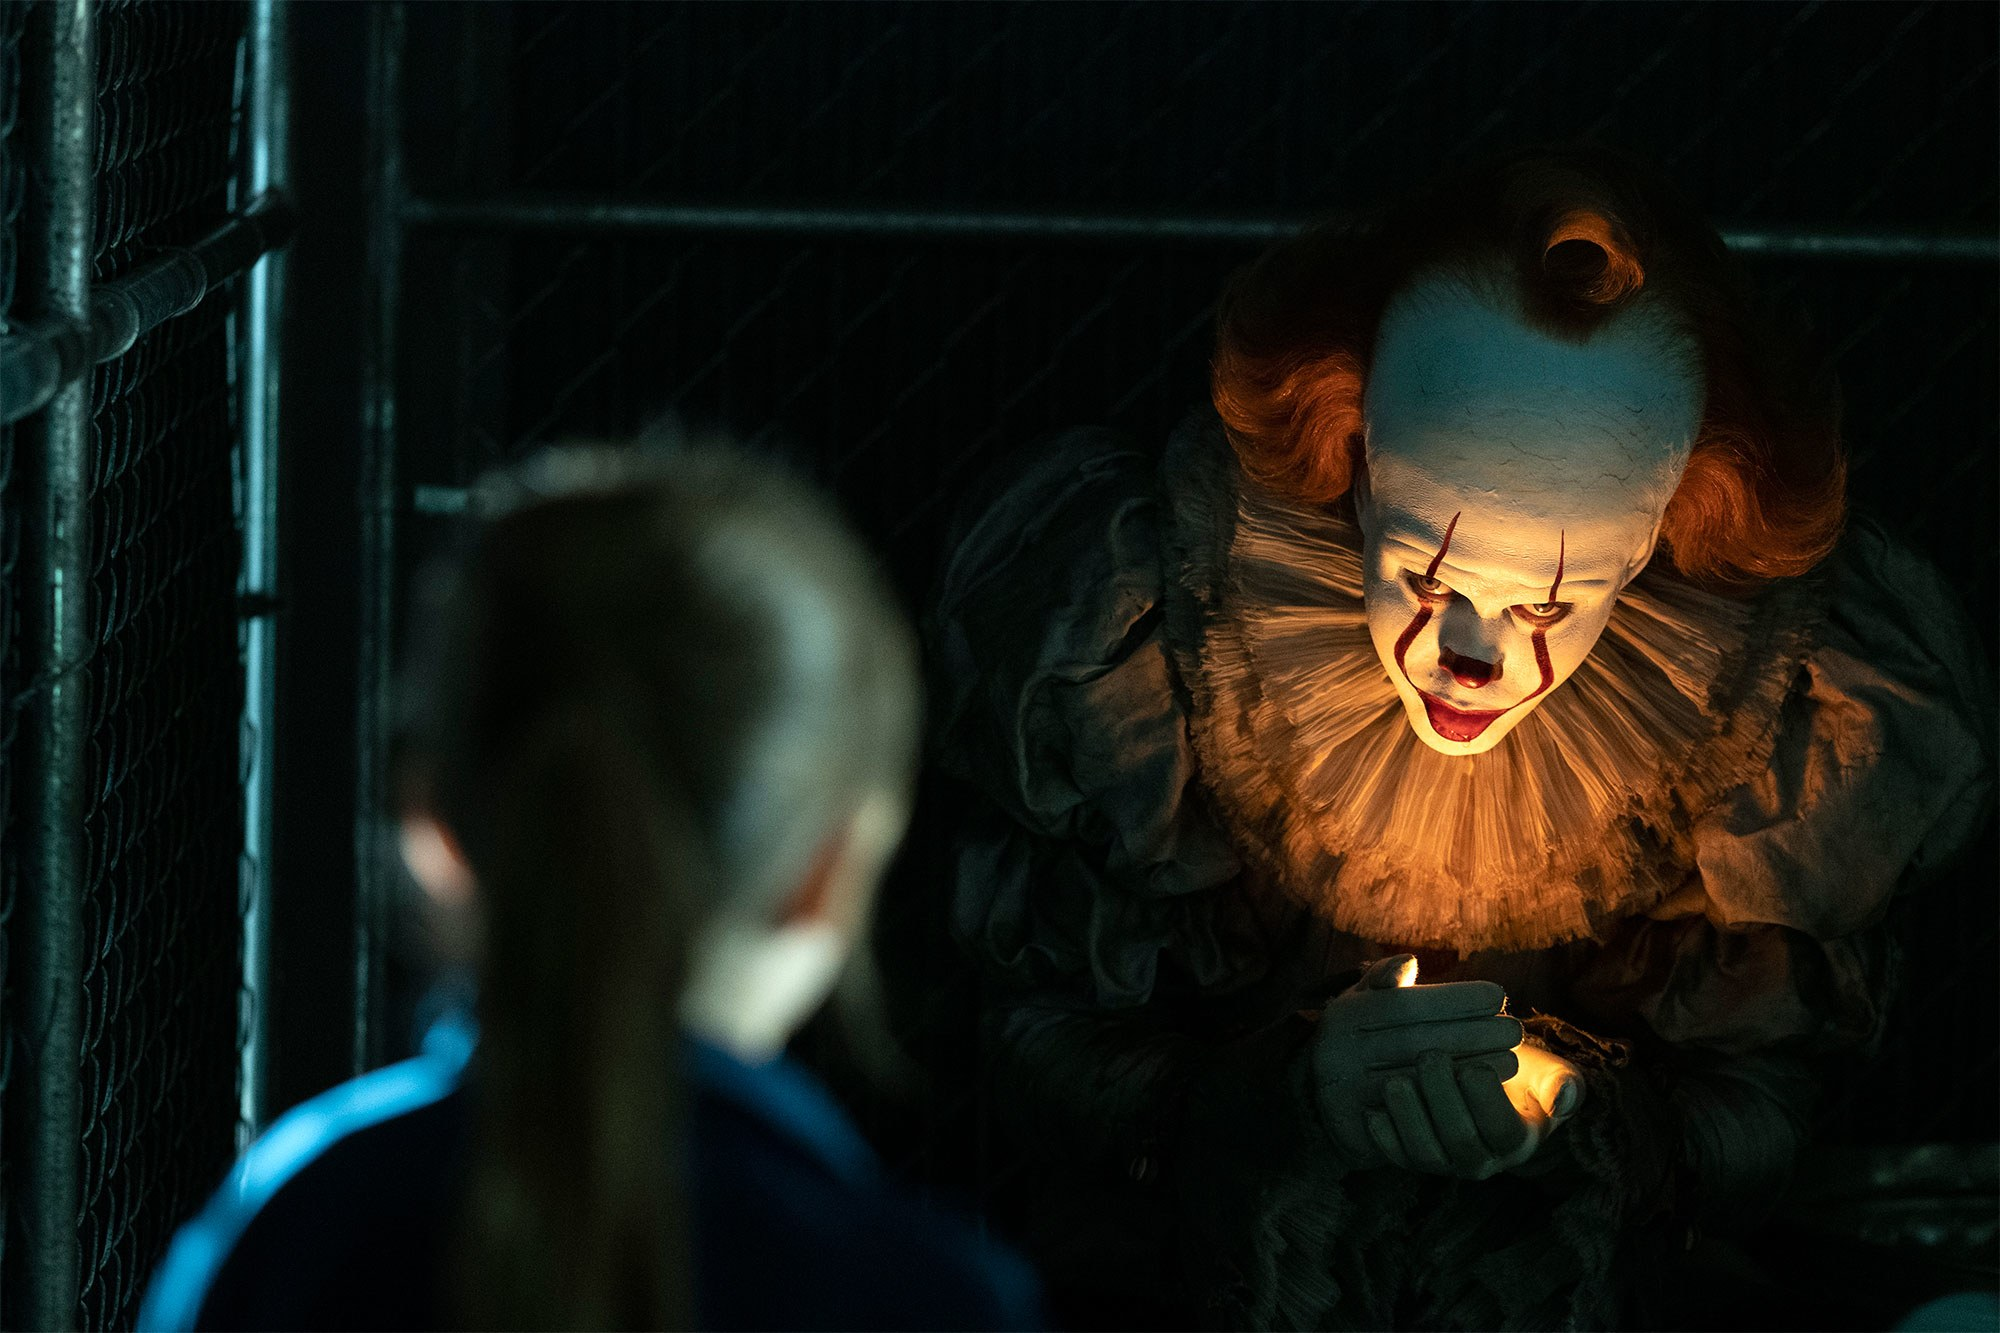 An image from the movie It. A terrifying clown looks at a girl